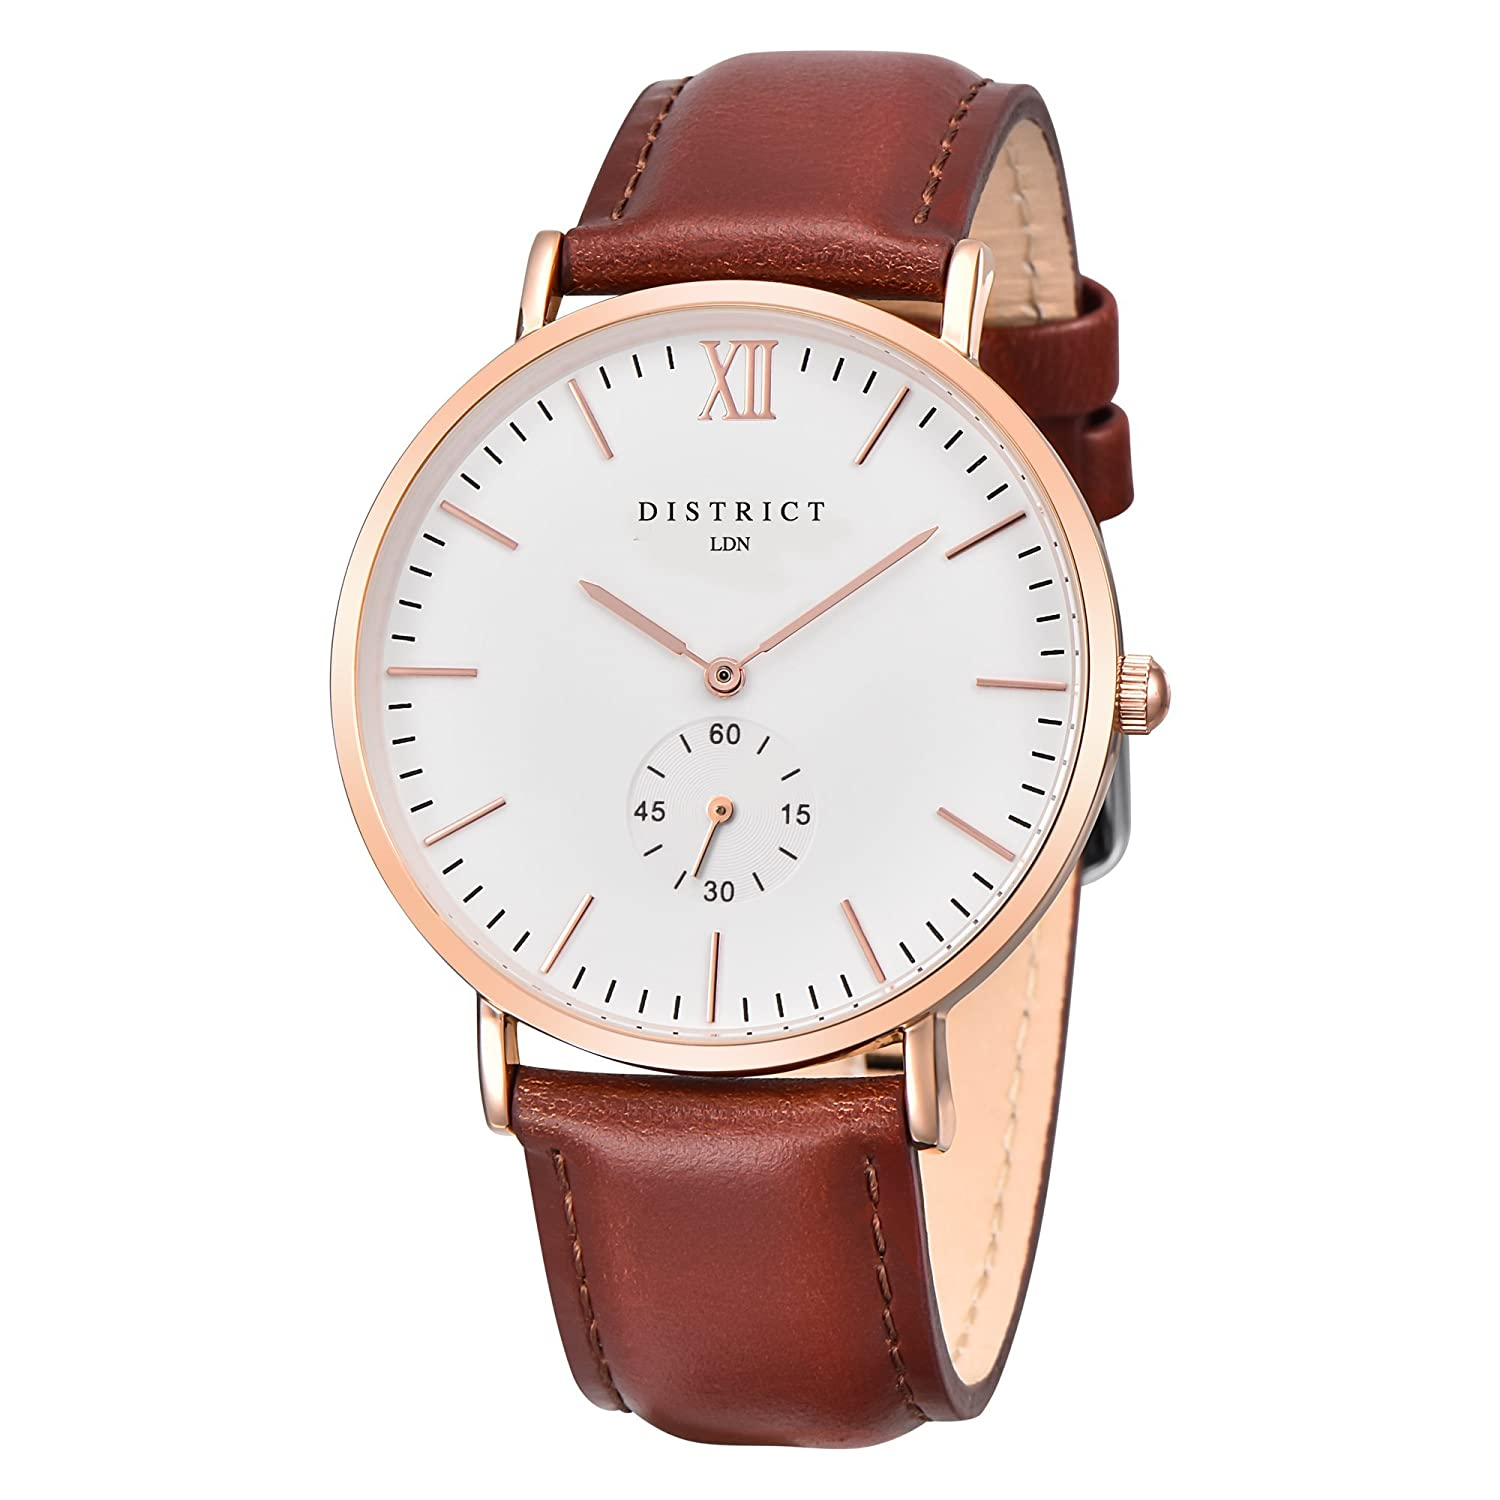 51085b6b5 ... Mens Watch - Slim Light Brown Leather Band Quartz Rose Gold Wrist Watch  Luxury Classic Simple Casual Design White Dial Watch - Business Fashion  Unisex ...